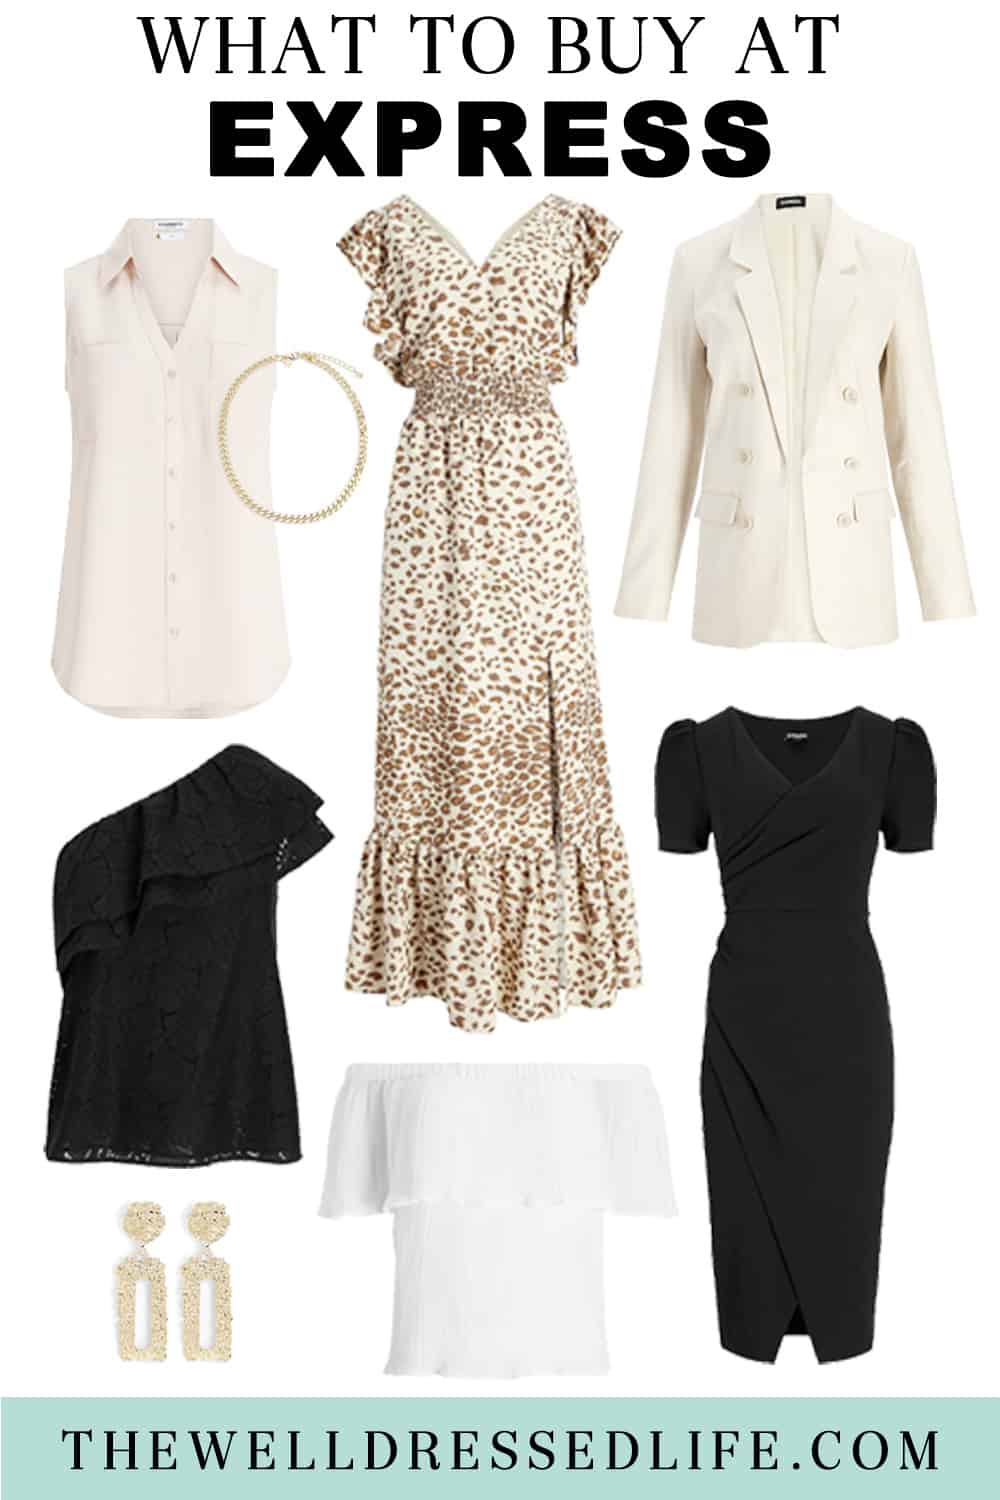 What to Buy at Express